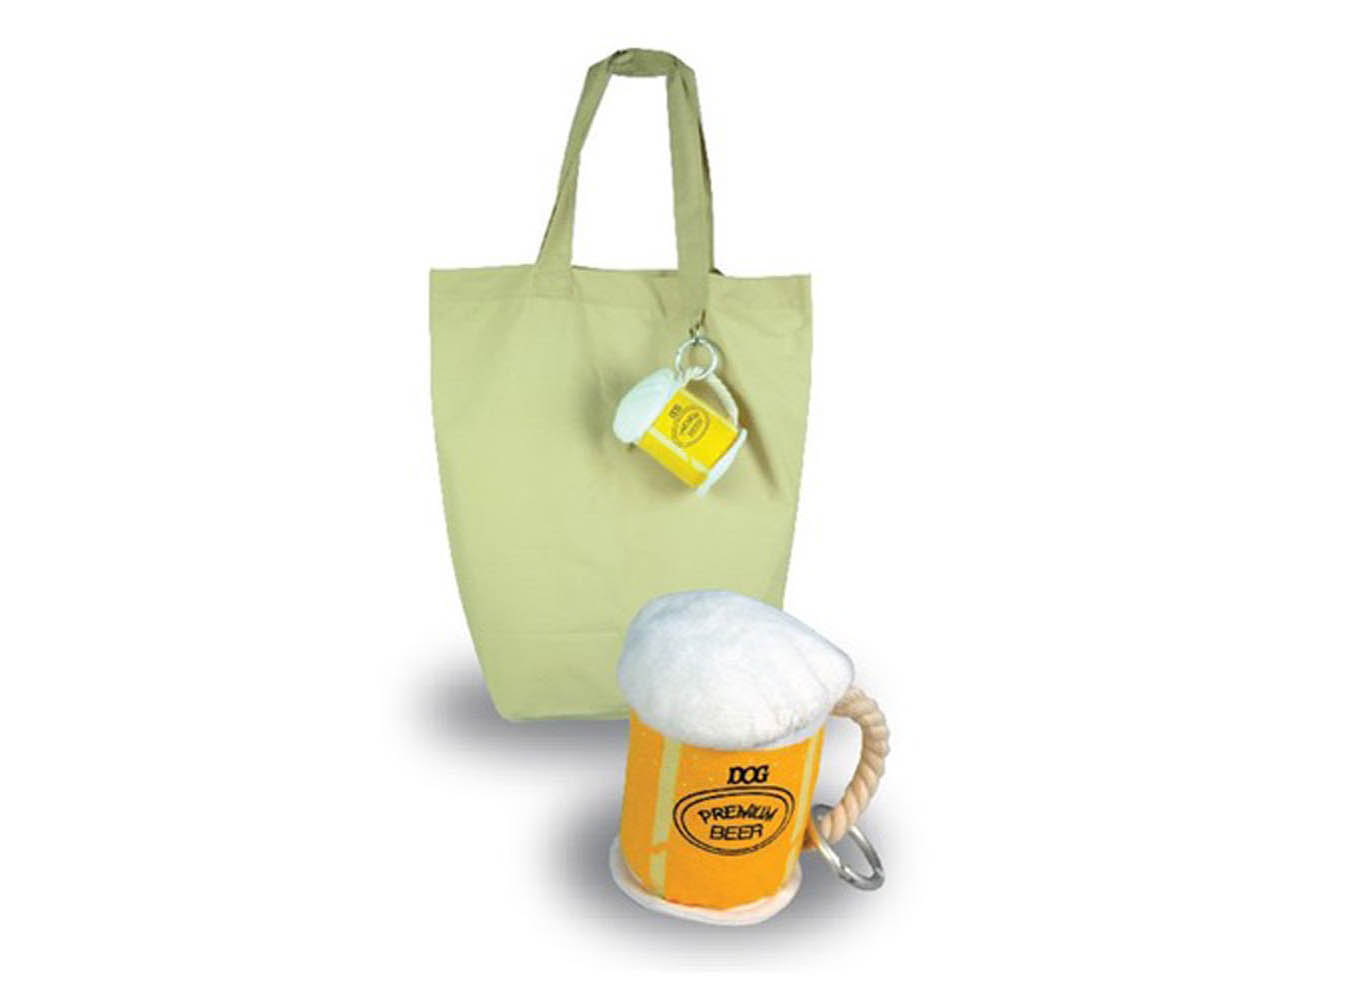 Custom Canvas Shopping Tote Bag w/ Custom Beer Glass Shaped Pouch